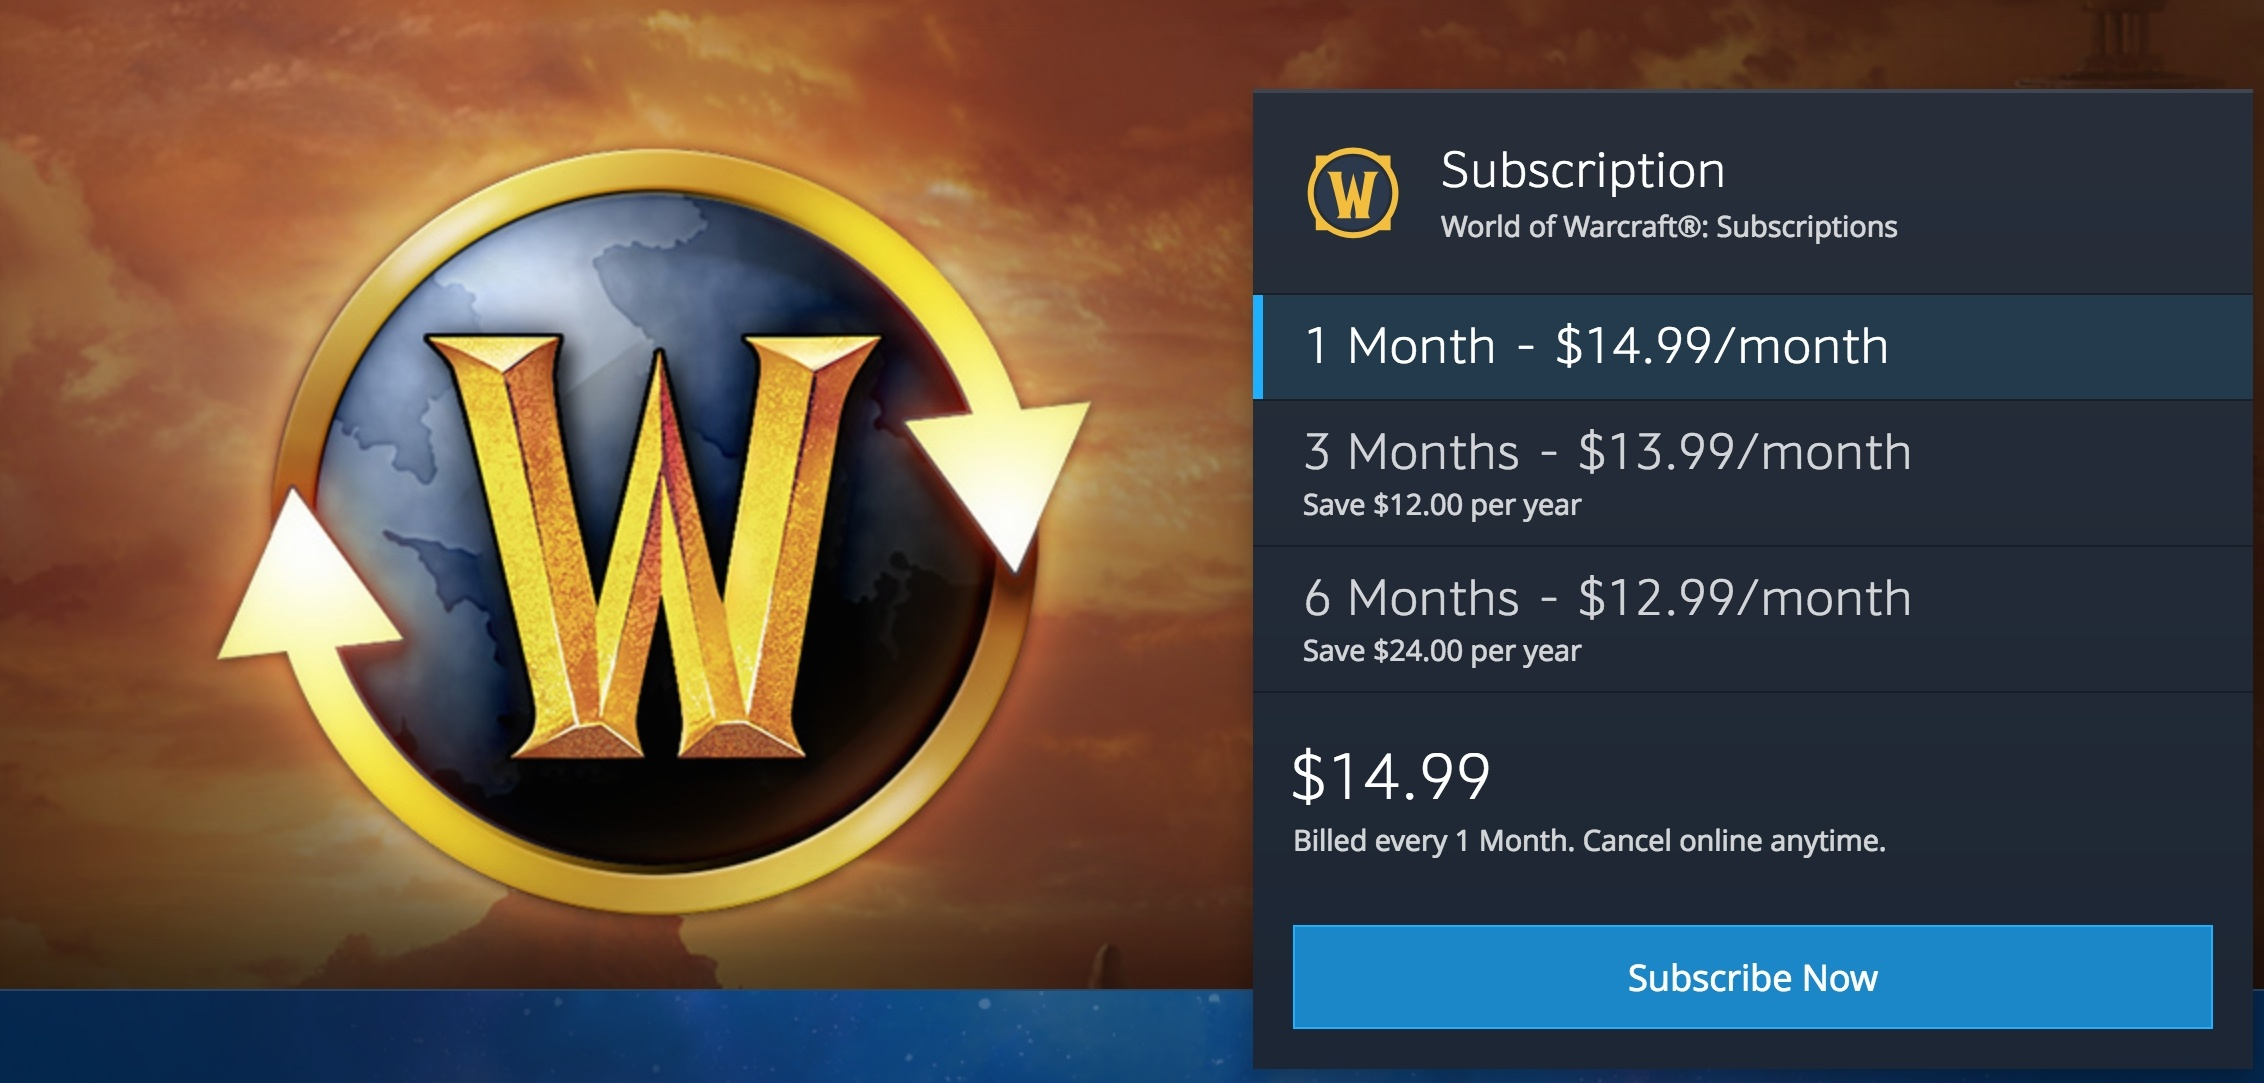 World of Warcraft has a very simple subscription model that emphasises the value of longer contracts without creating an overwhelming cognitive load.